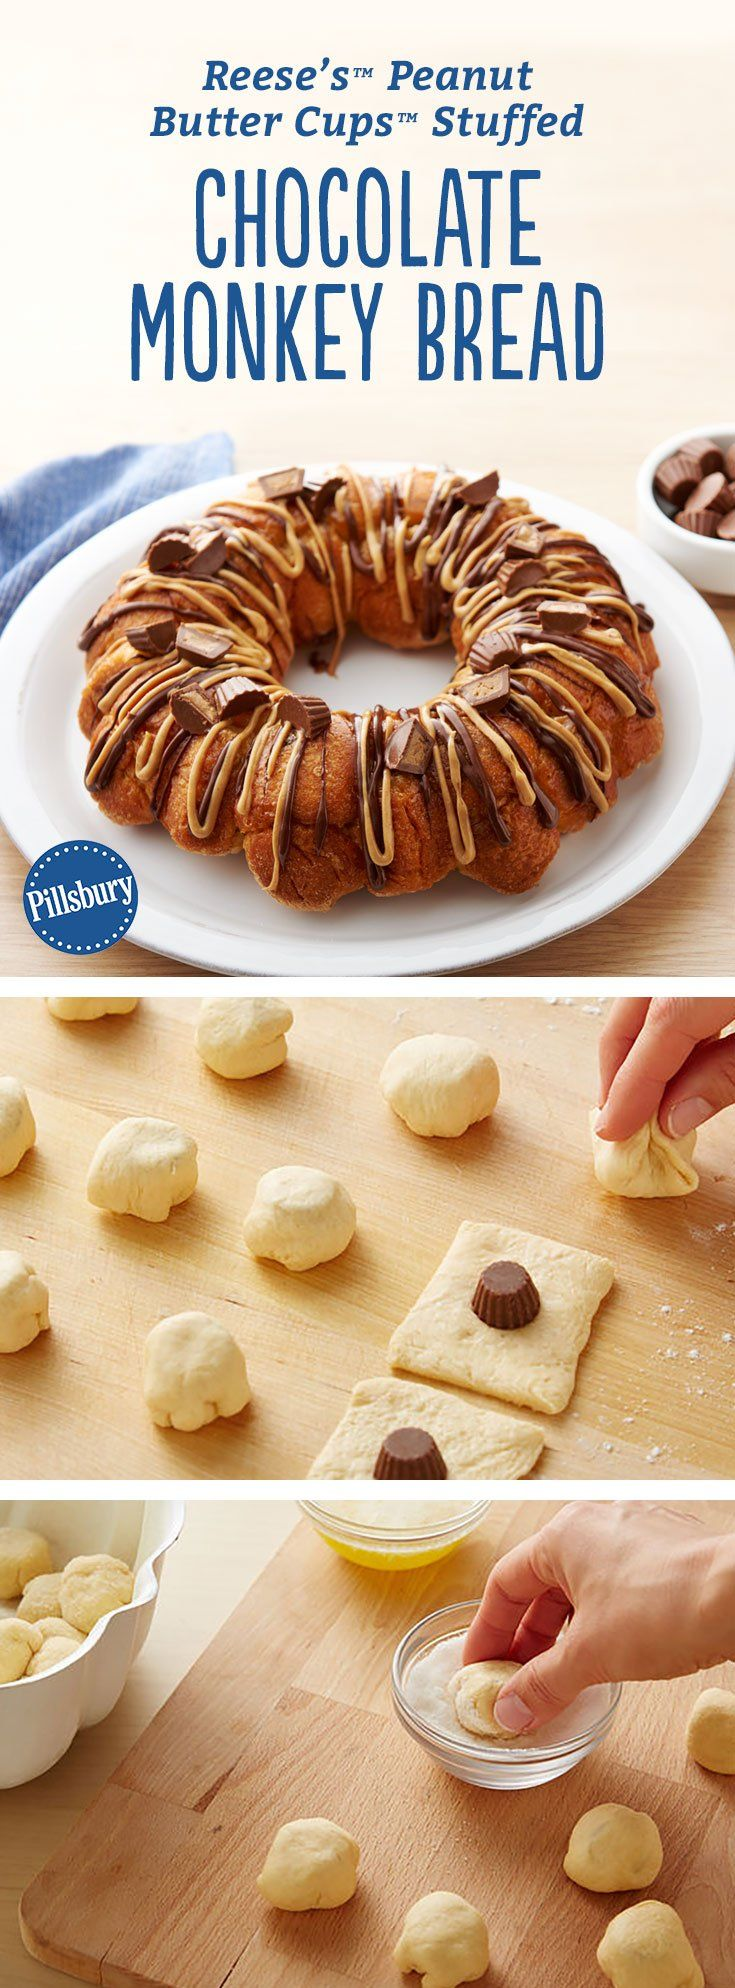 Yes, we stuffed our monkey bread with Reese's™ Peanut Butter Cups™  for a crazy-good breakfast (or dessert!) that is a total game-changer. Expert tip: For success in this recipe, use Reese's™ Peanut Butter Cups™ minis that are already unwrapped, rather than the Reese's™ Peanut Butter Cups™ miniatures that come wrapped, which are a little larger.